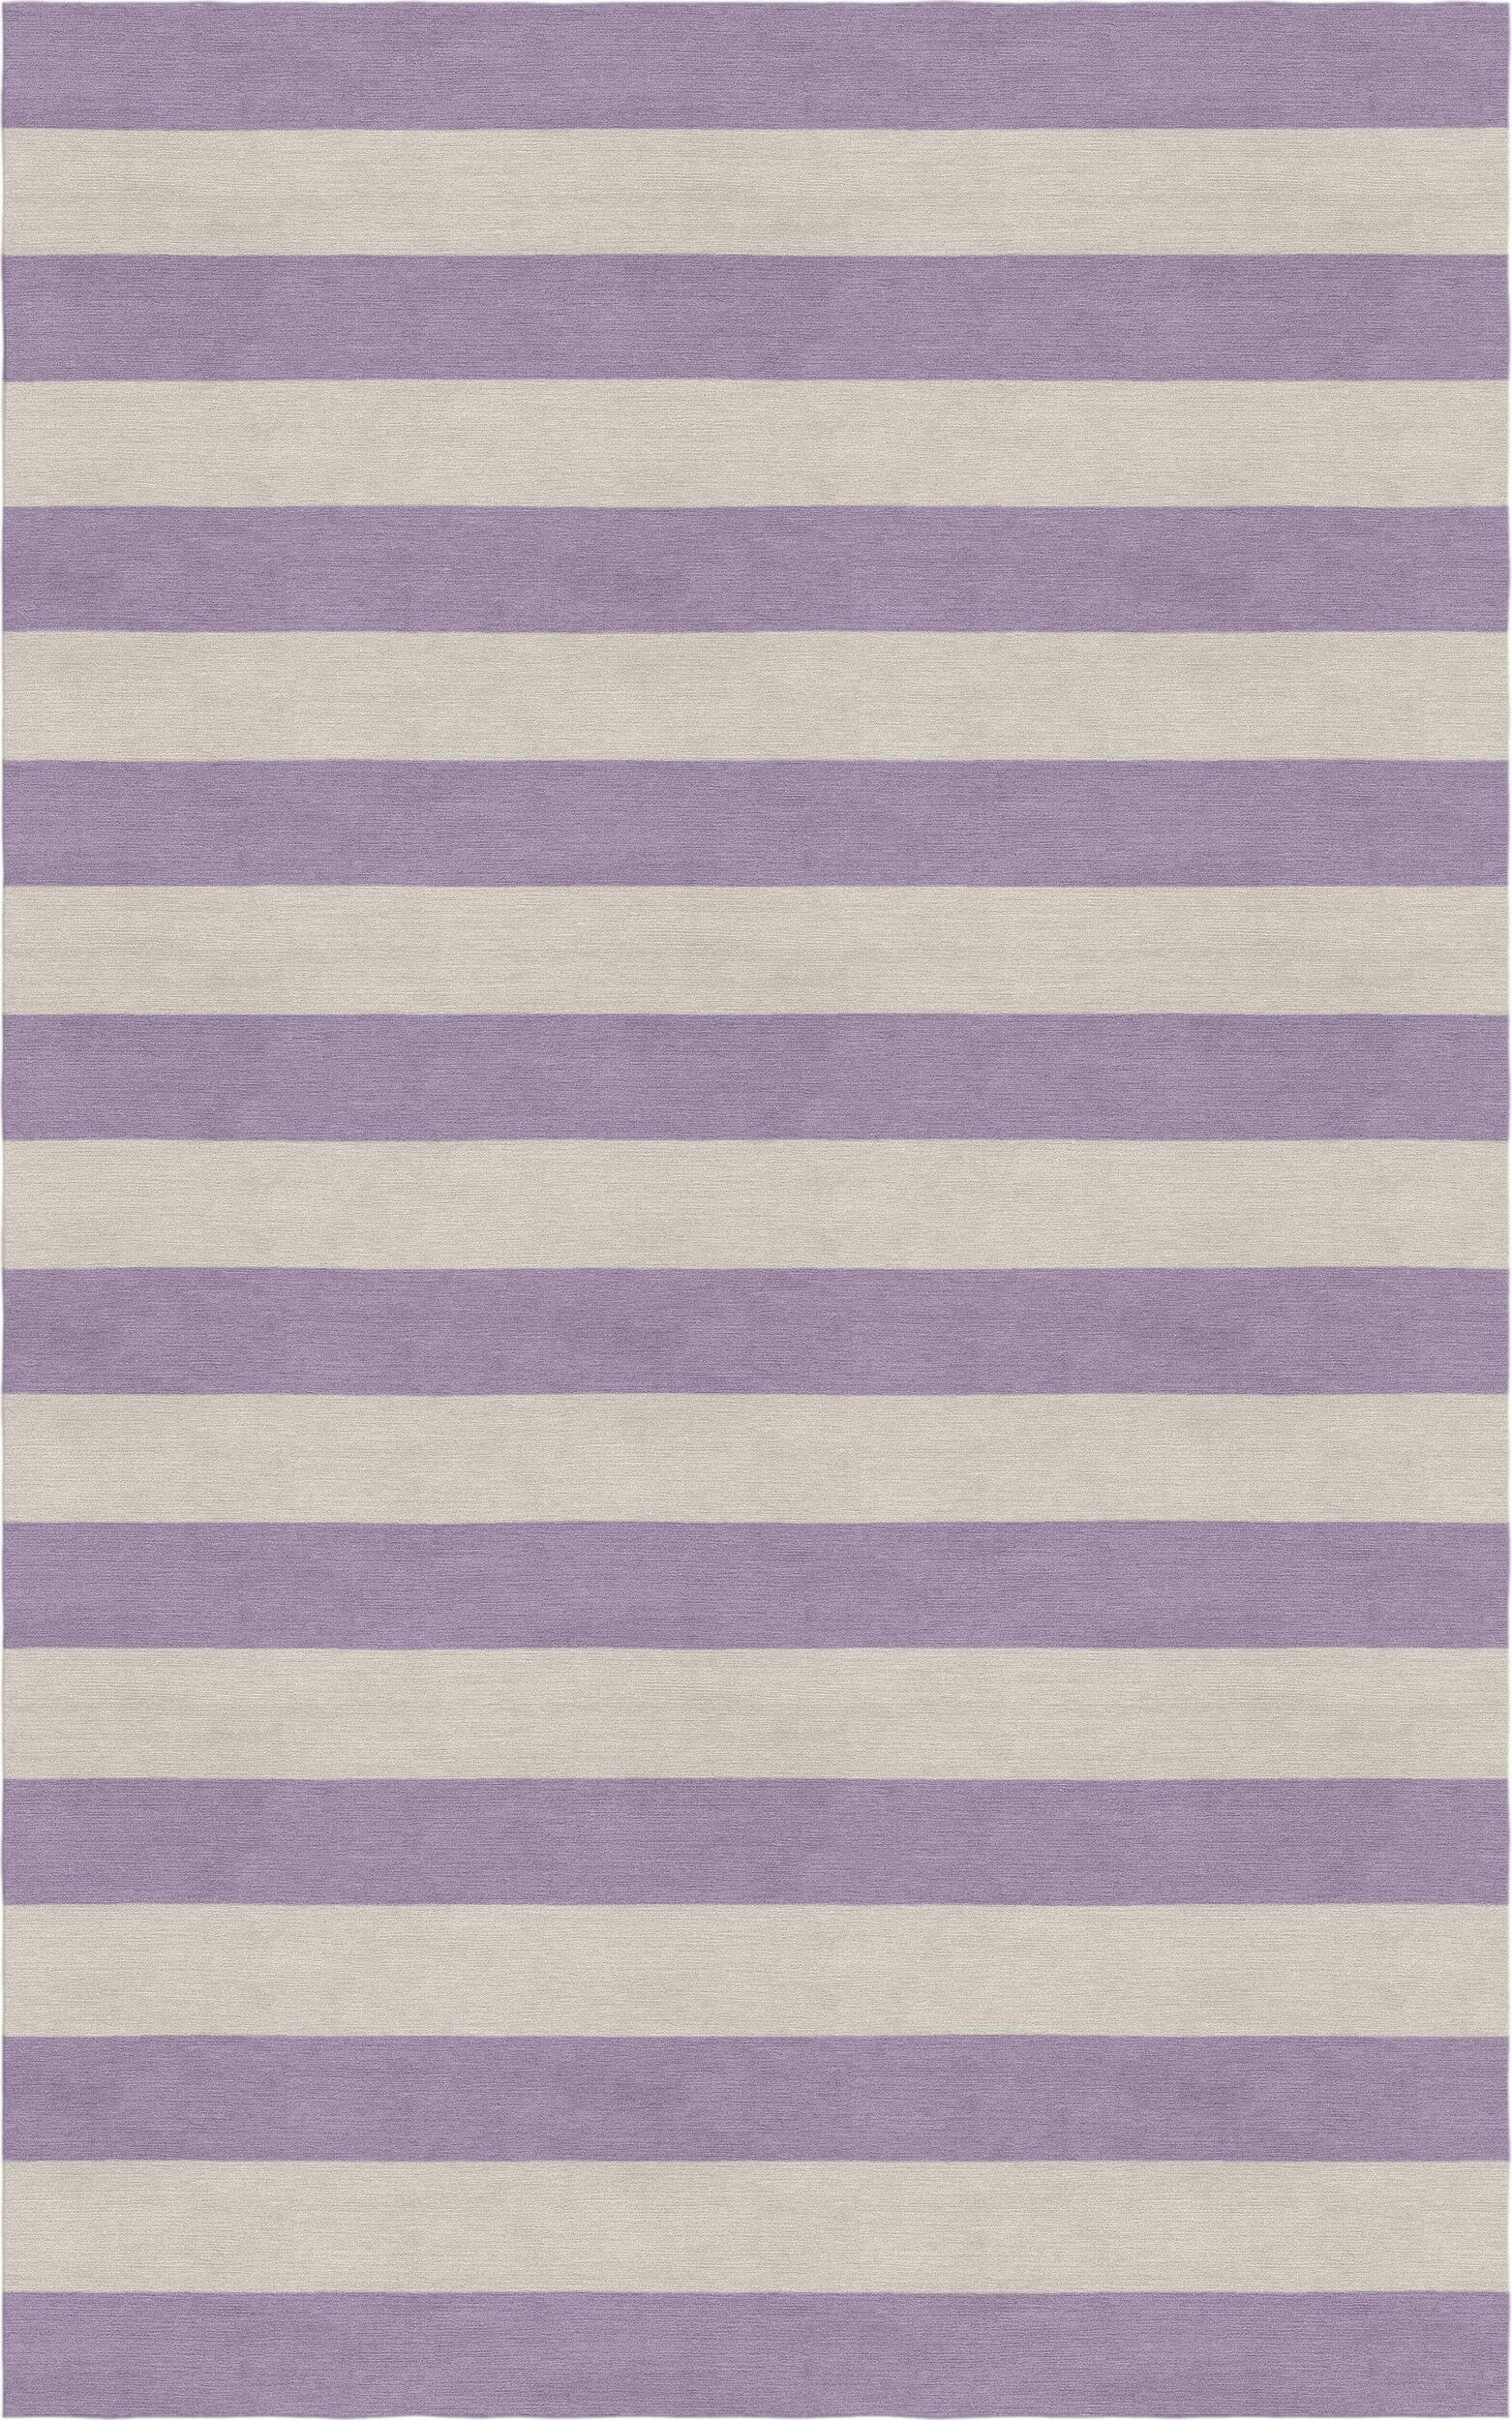 Mellott Stripe Hand-Woven Wool Silver/Violet Area Rug Rug Size: Rectangle 6' x 9'